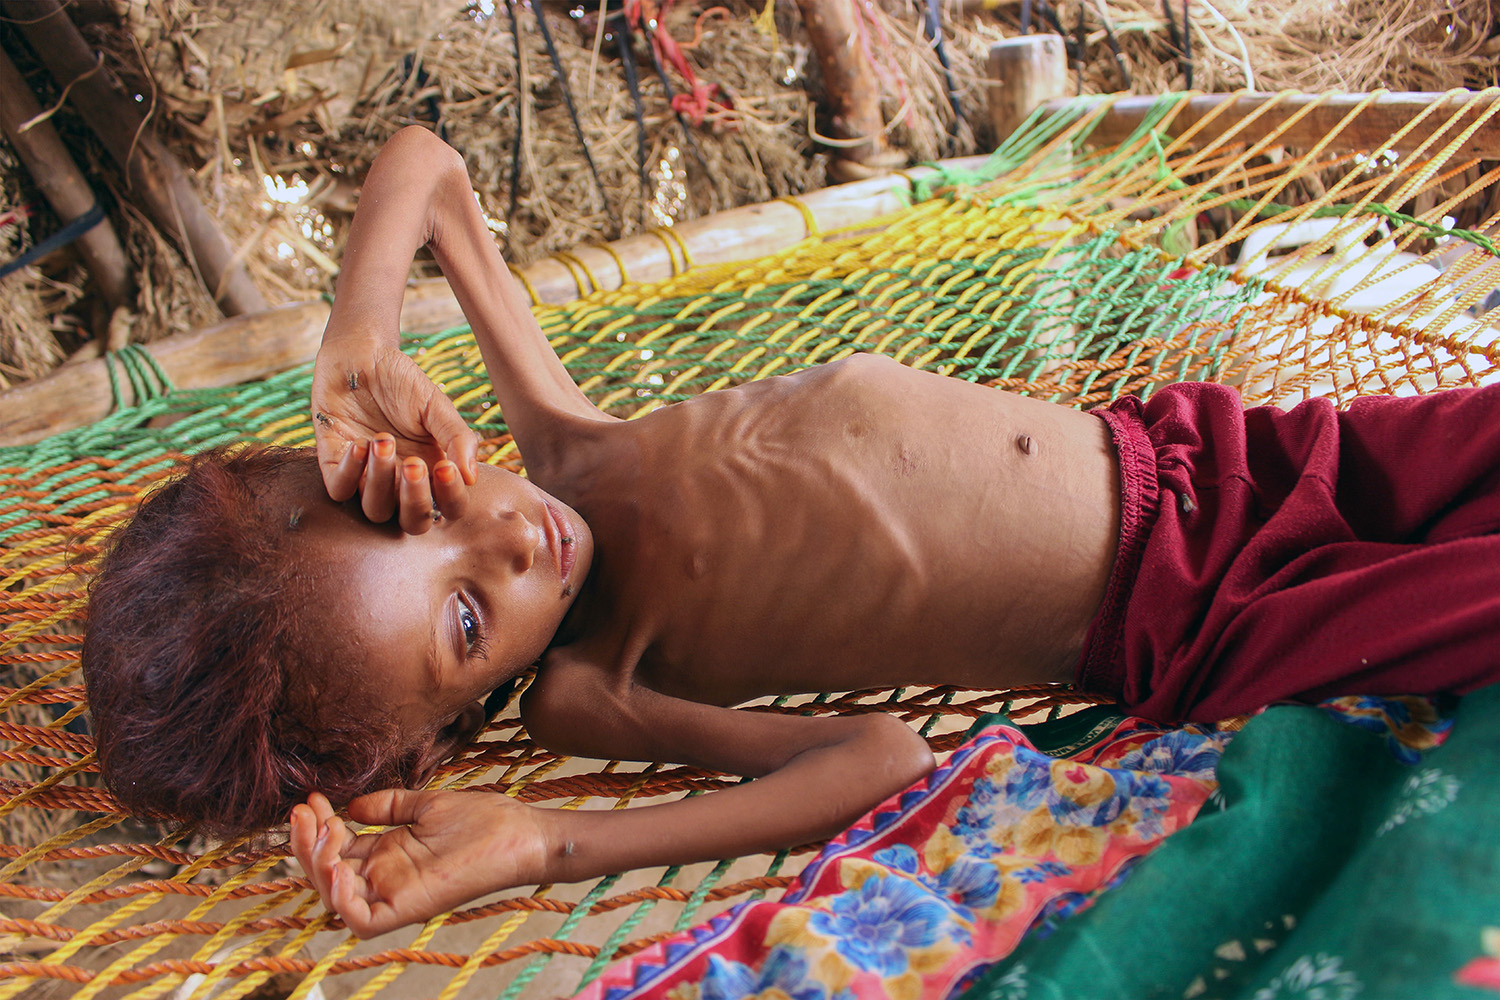 A 7-year-old girl suffering from malnutrition lies on a bed at a makeshift camp for displaced Yemenis in the northwestern Hajjah province Sept. 28.